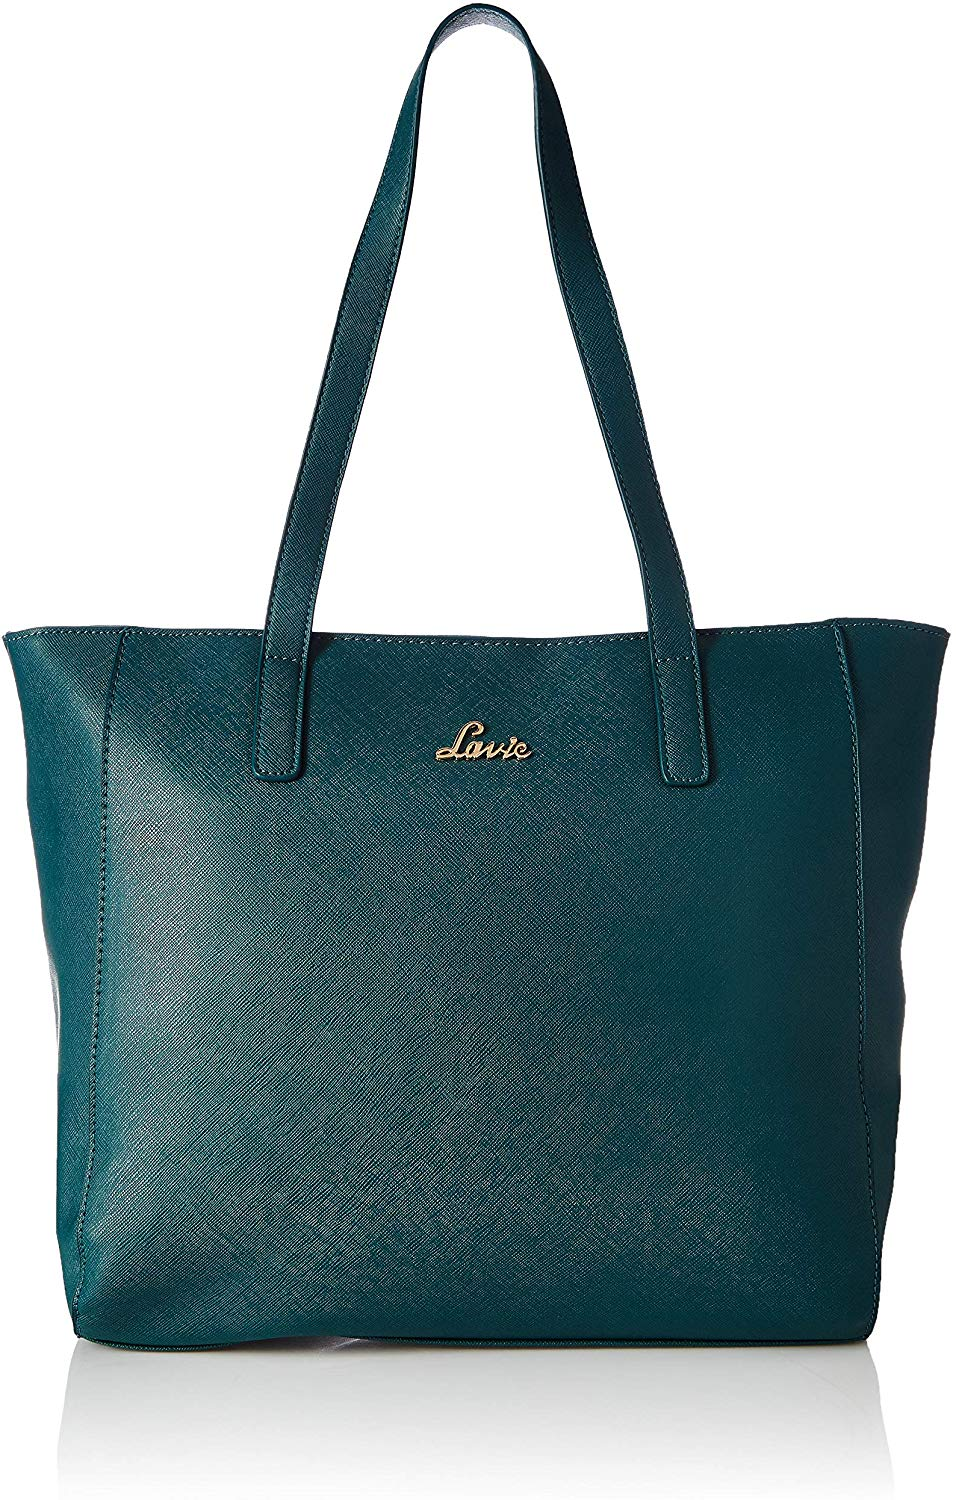 Lavie Women's Tote Handbag